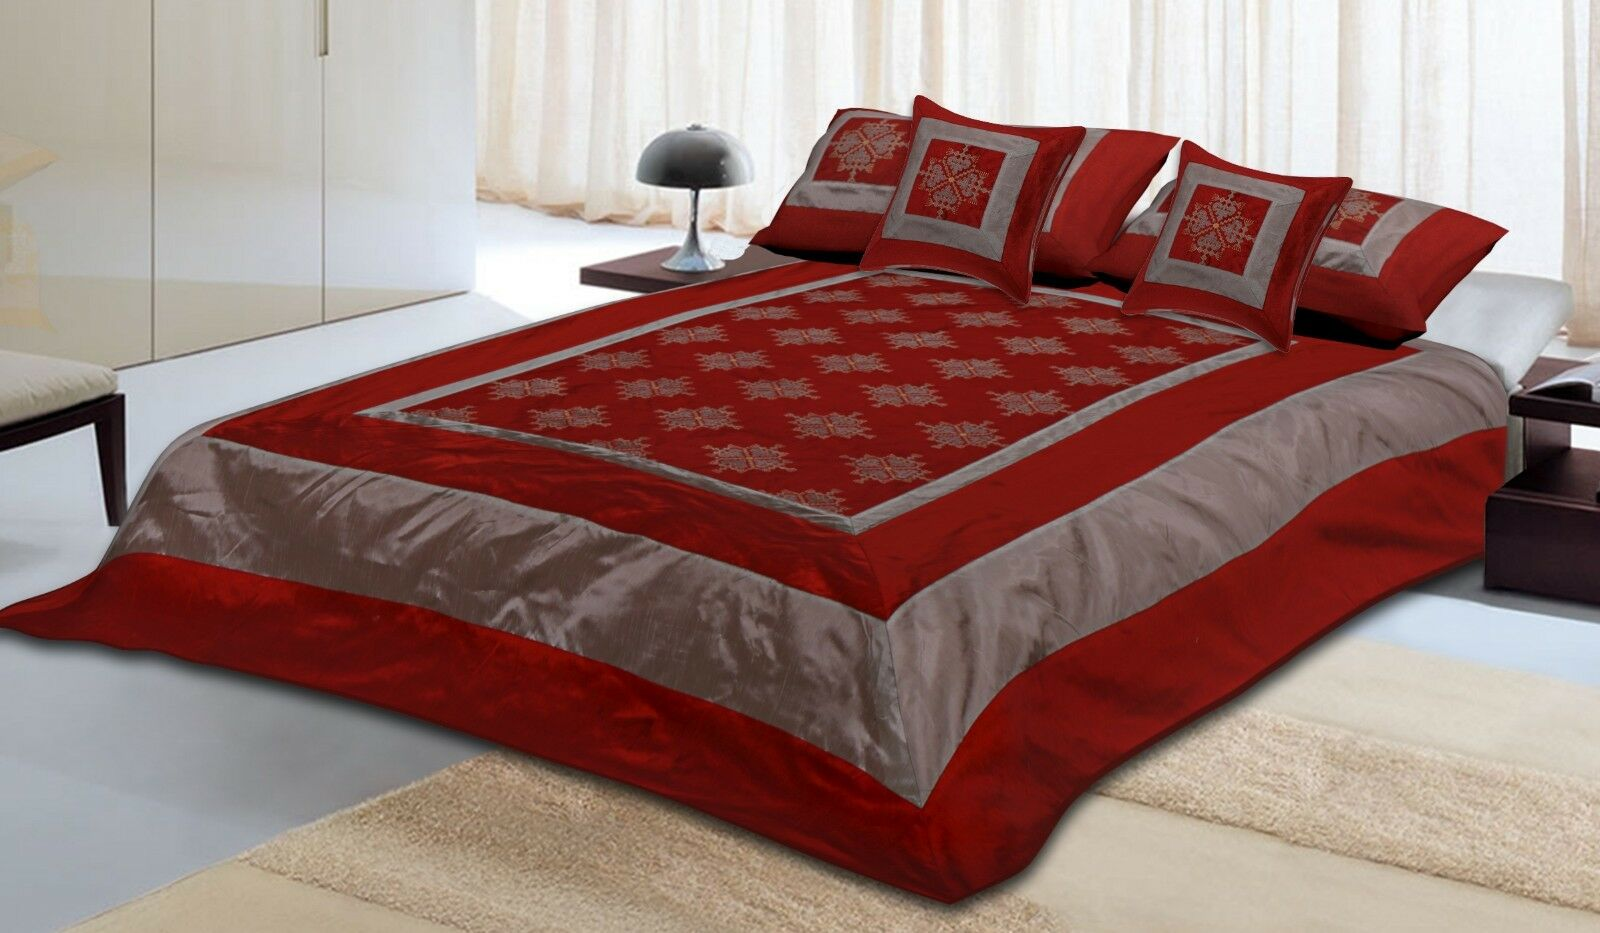 Brocade Silk 5 PC Bedding Set Traditional Bed Sheet With Pillow Cases